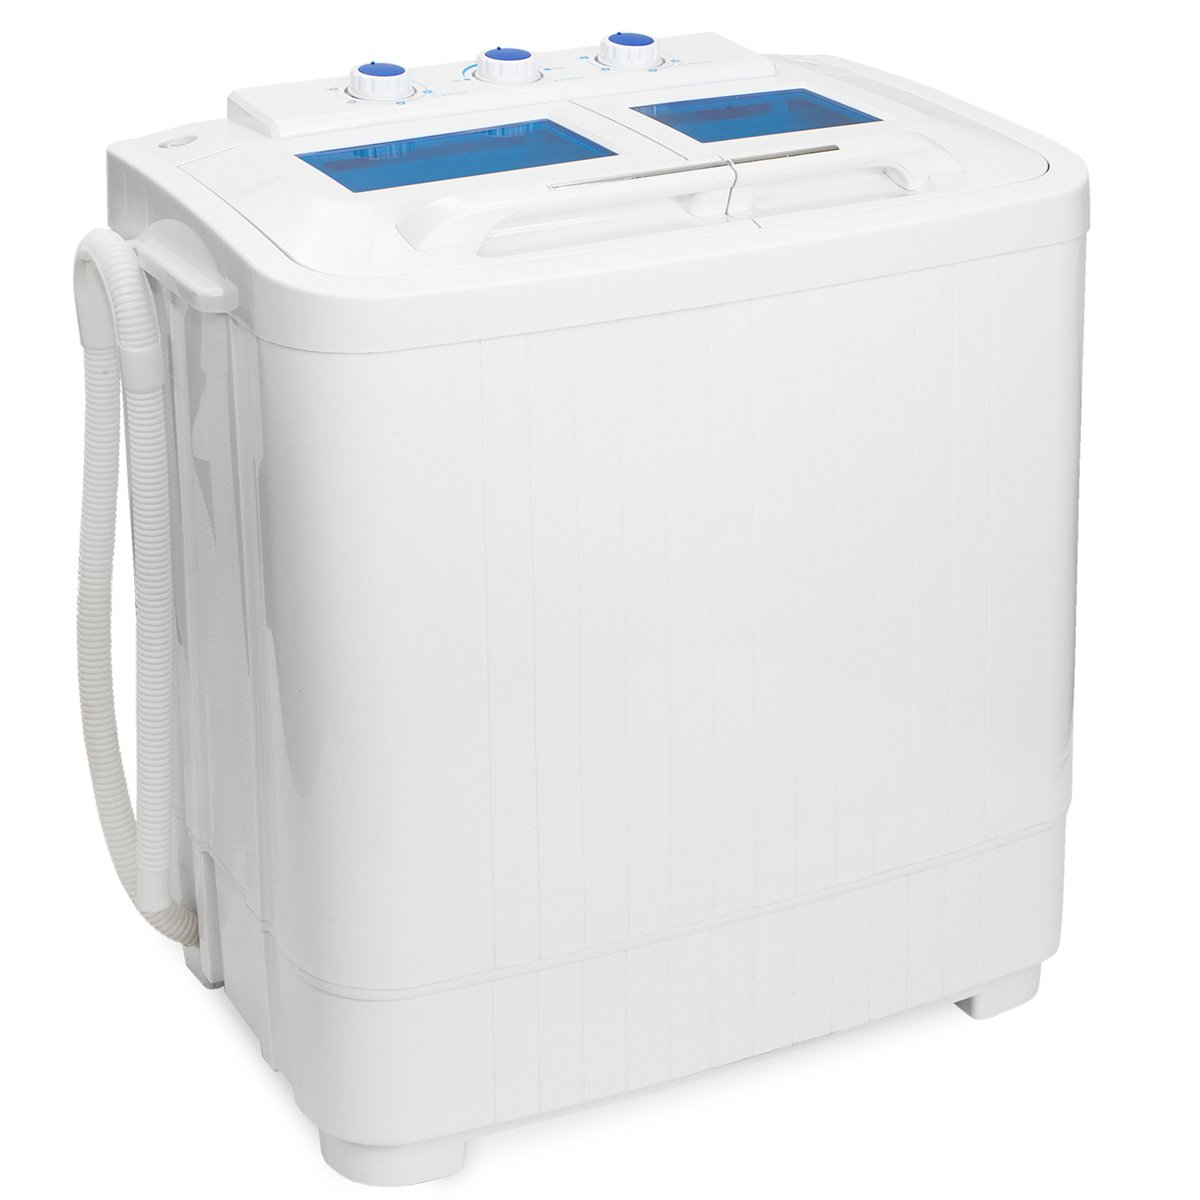 Portable Compact Washer And Spin Dry Cycle With Built In Hoover Washing Machine Motor Wiring Diagram Diagrams Pump 33l 16l Dryer Appliances